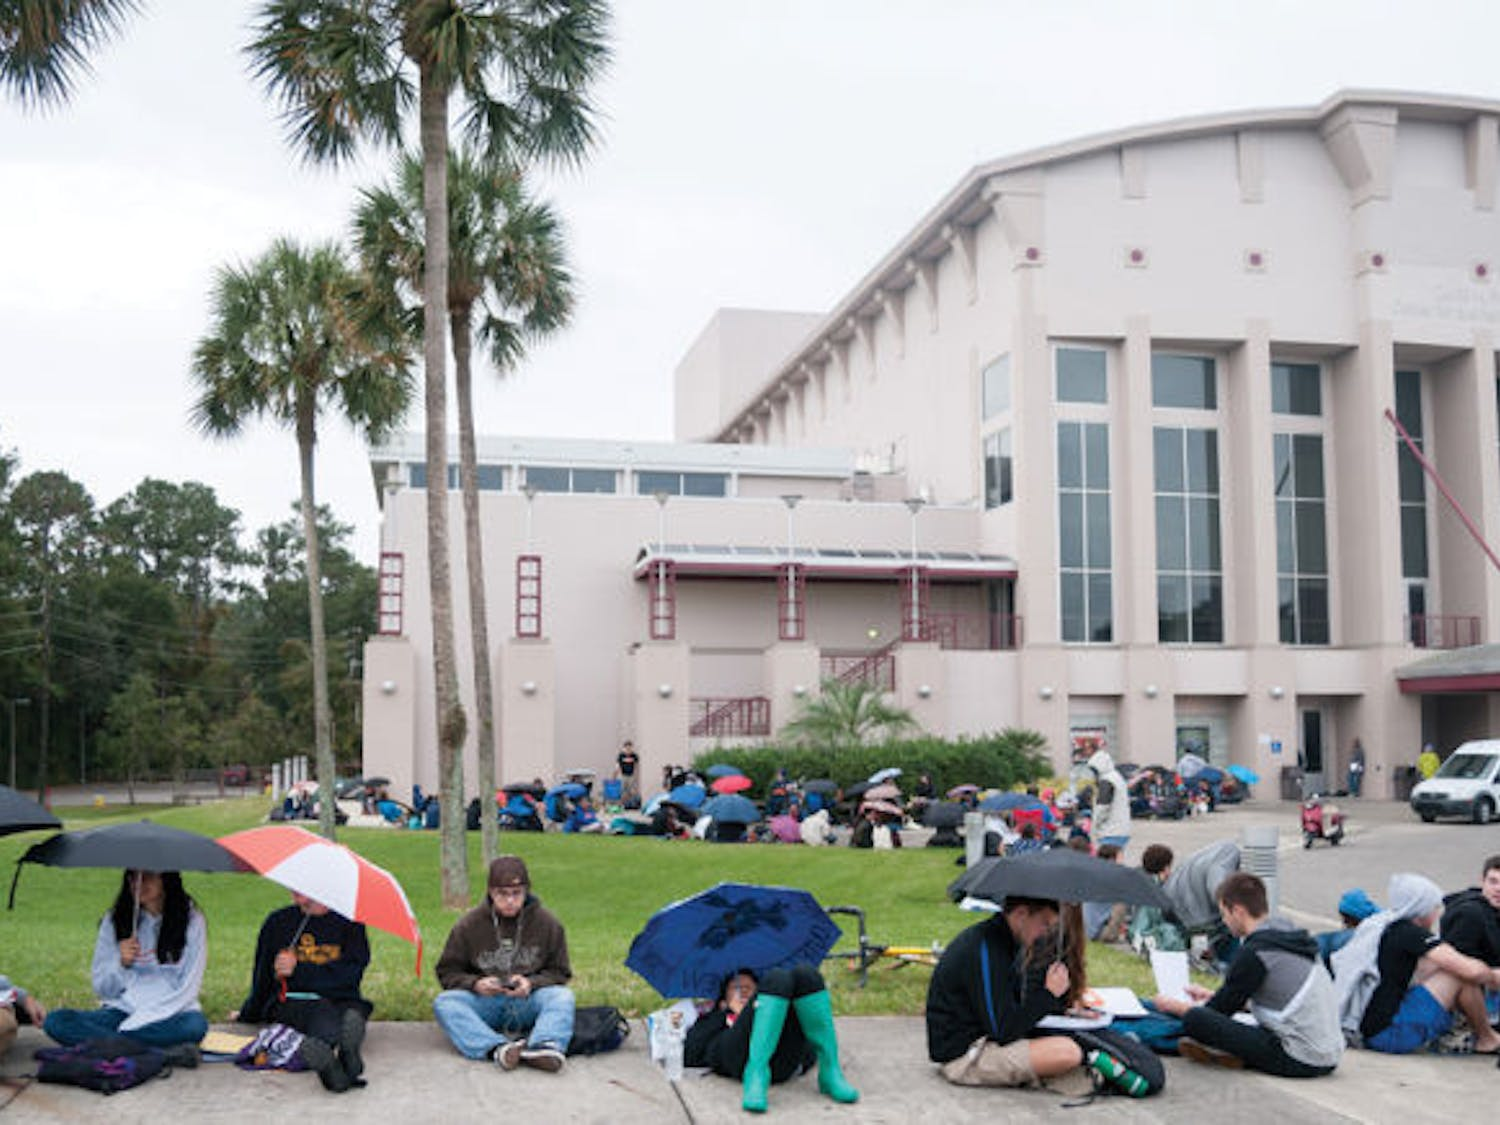 People brave the rain Wednesday morning and wait in line around the Phillips Center for the Performing Arts to get tickets for Bill Nye's event tonight, hosted by the Accent Speaker's Bureau.